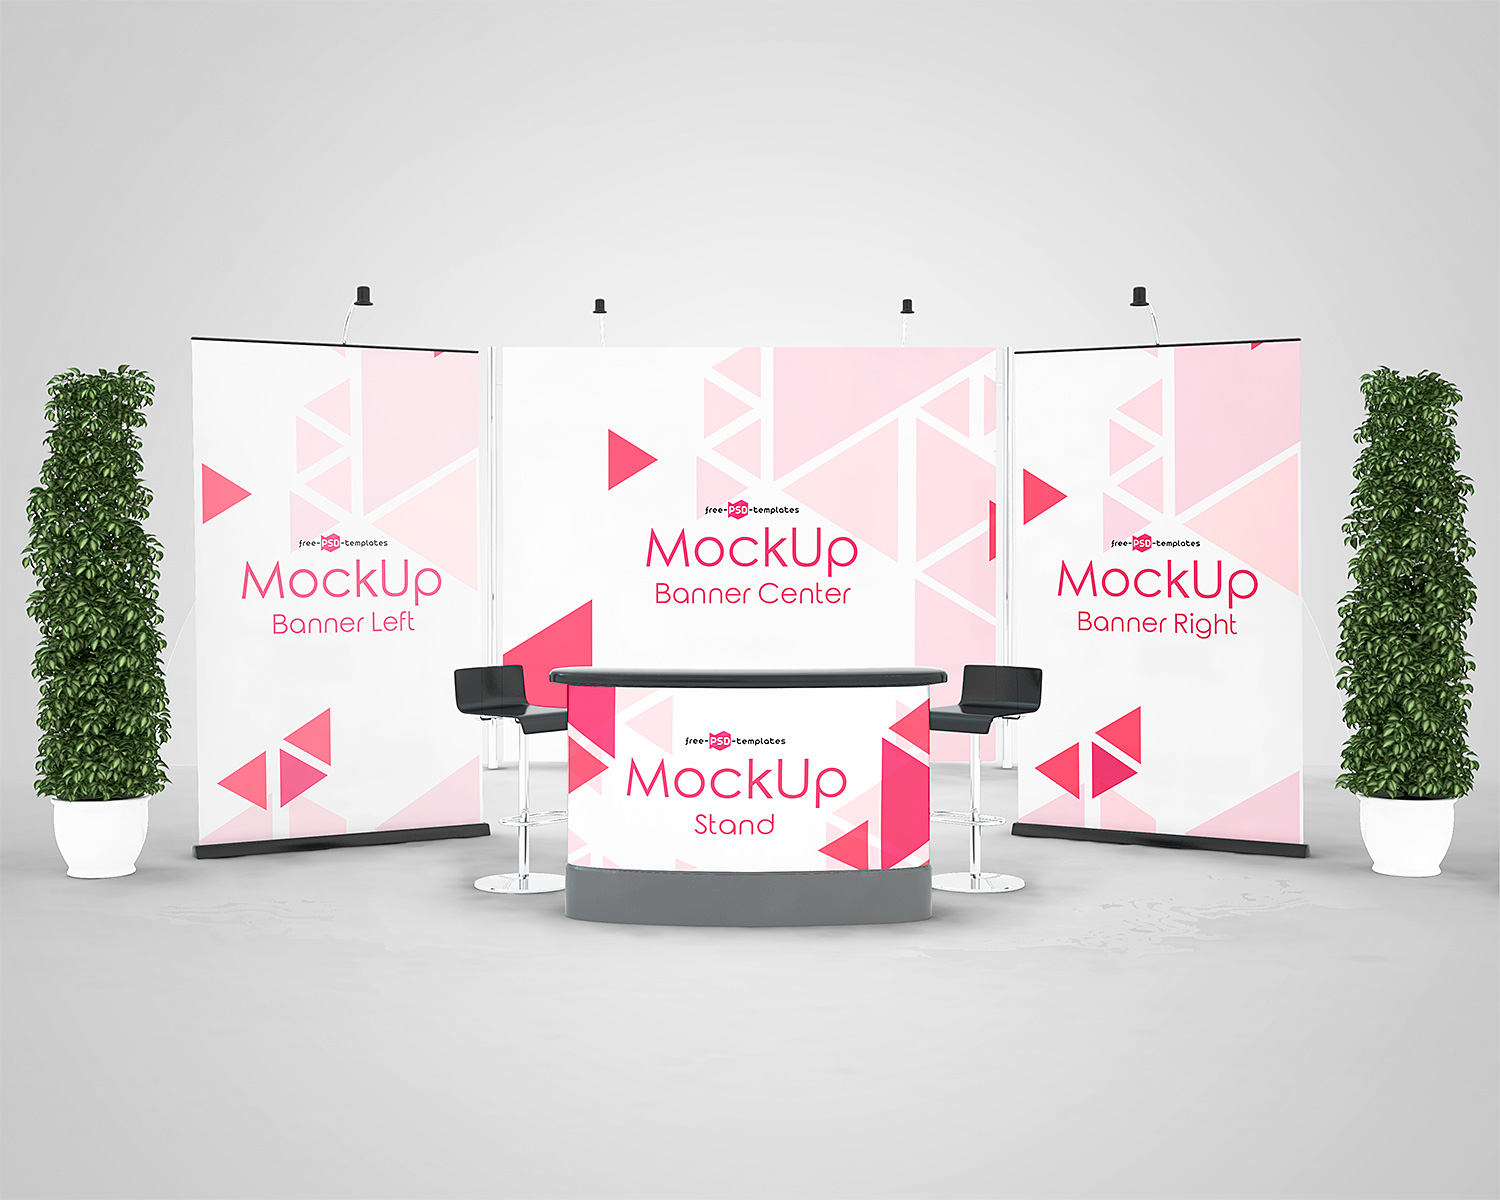 Exhibition Booth Psd : Exhibition stand mock ups free in psd free mockup